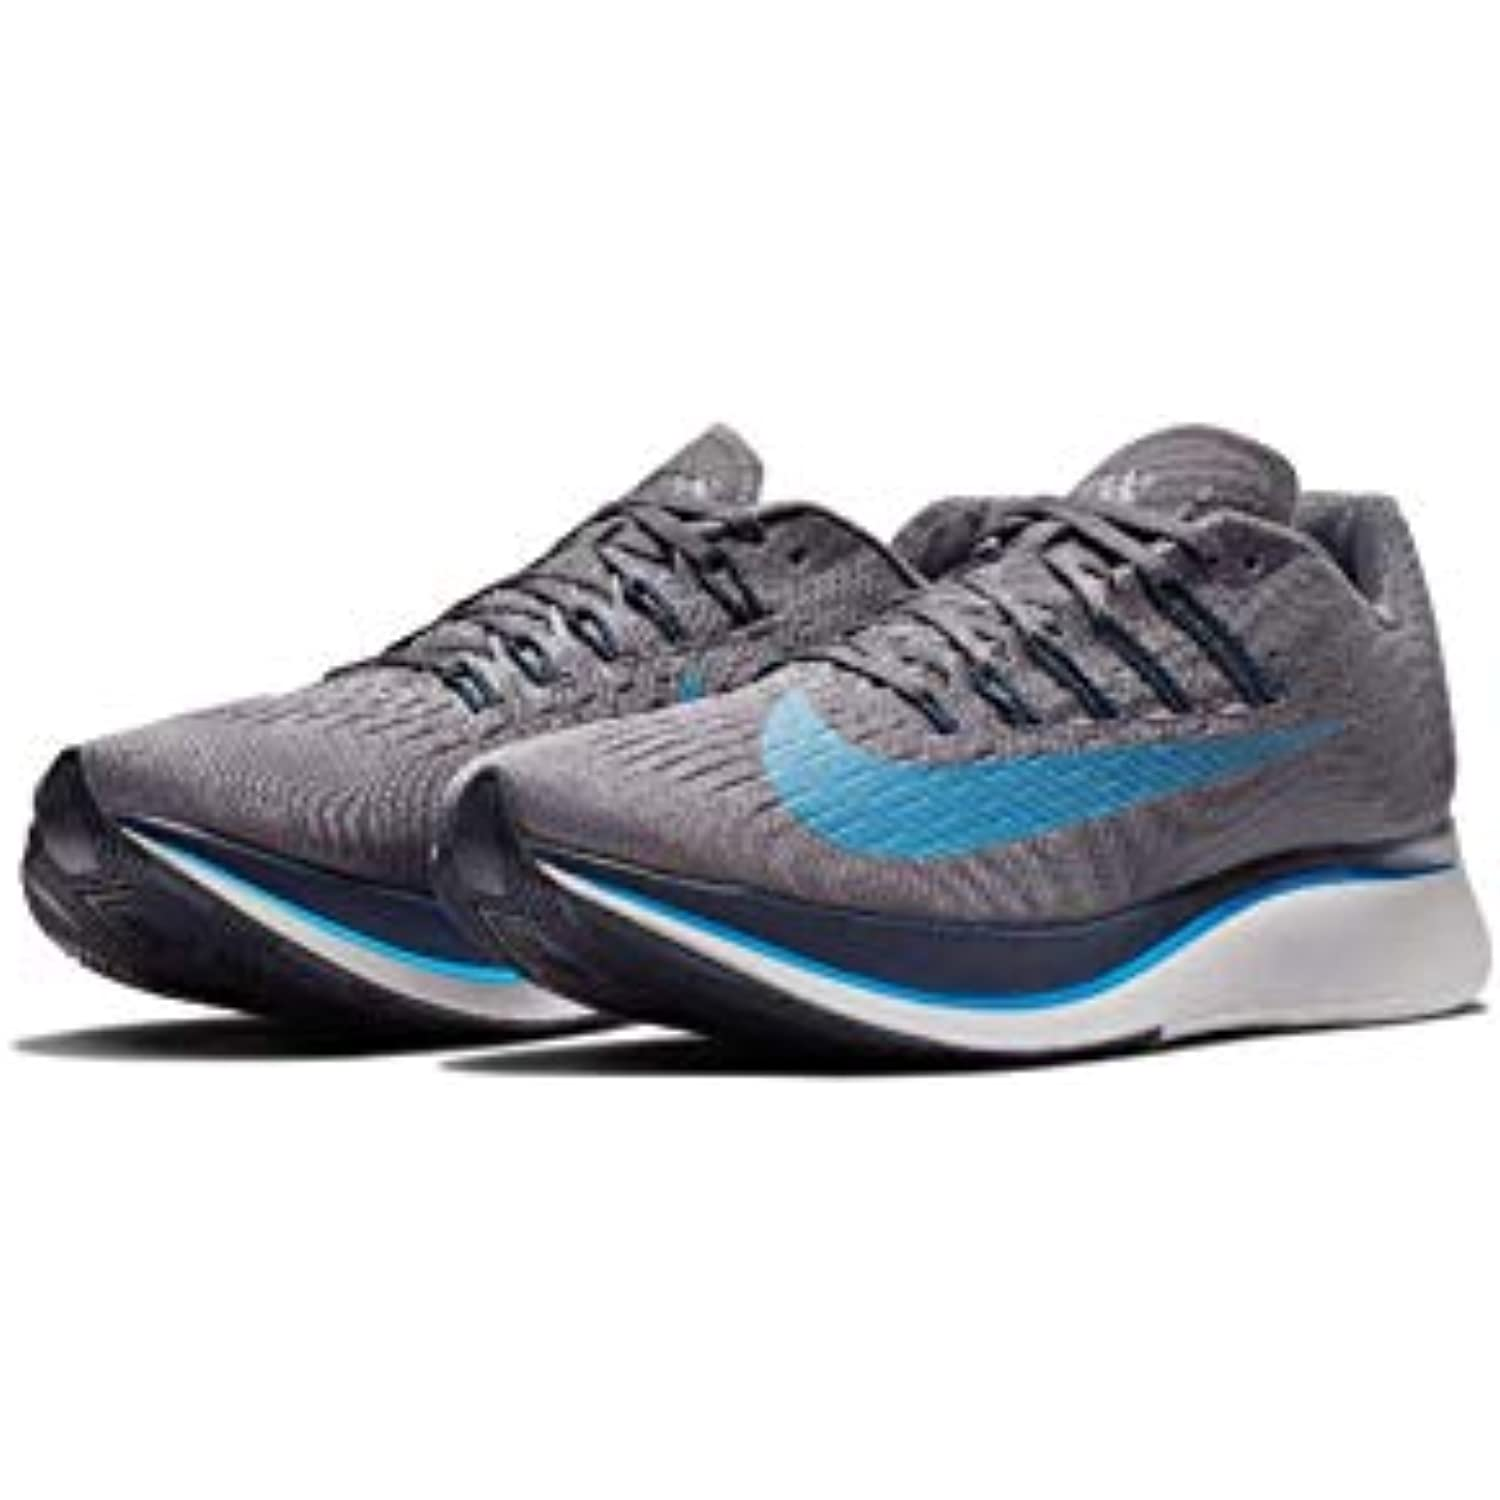 size 40 ef9cf 02320 NIKE Zoom Zoom Zoom Fly, Baskets Basses Homme - B07FN9PRWF - 418f49 ...